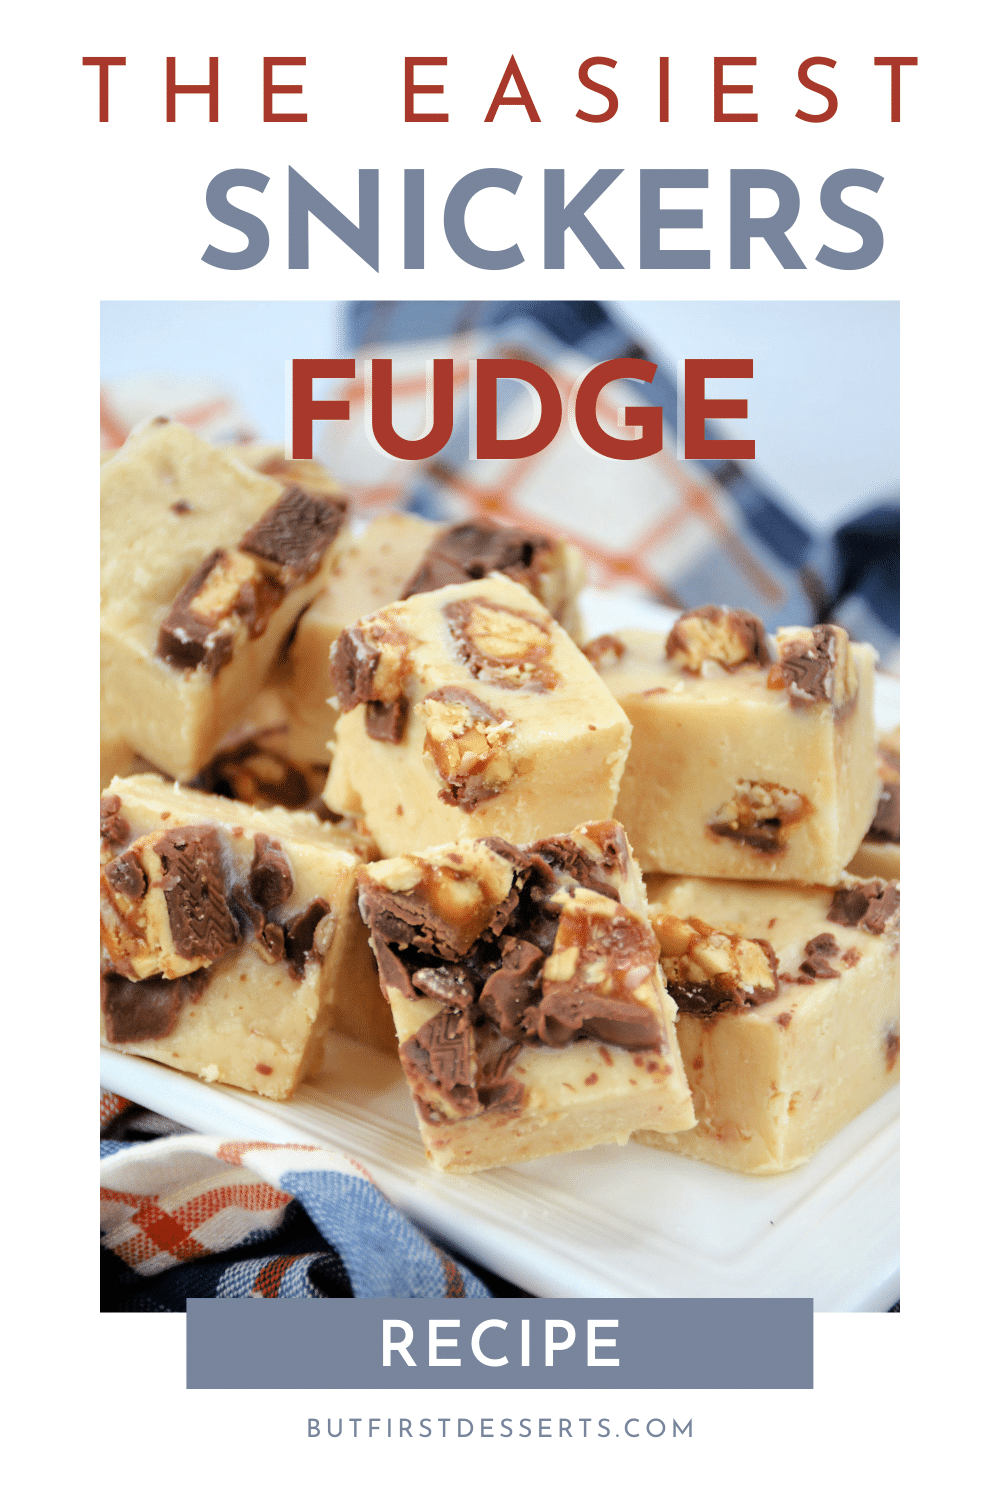 The Easiest Snickers Fudge Recipe